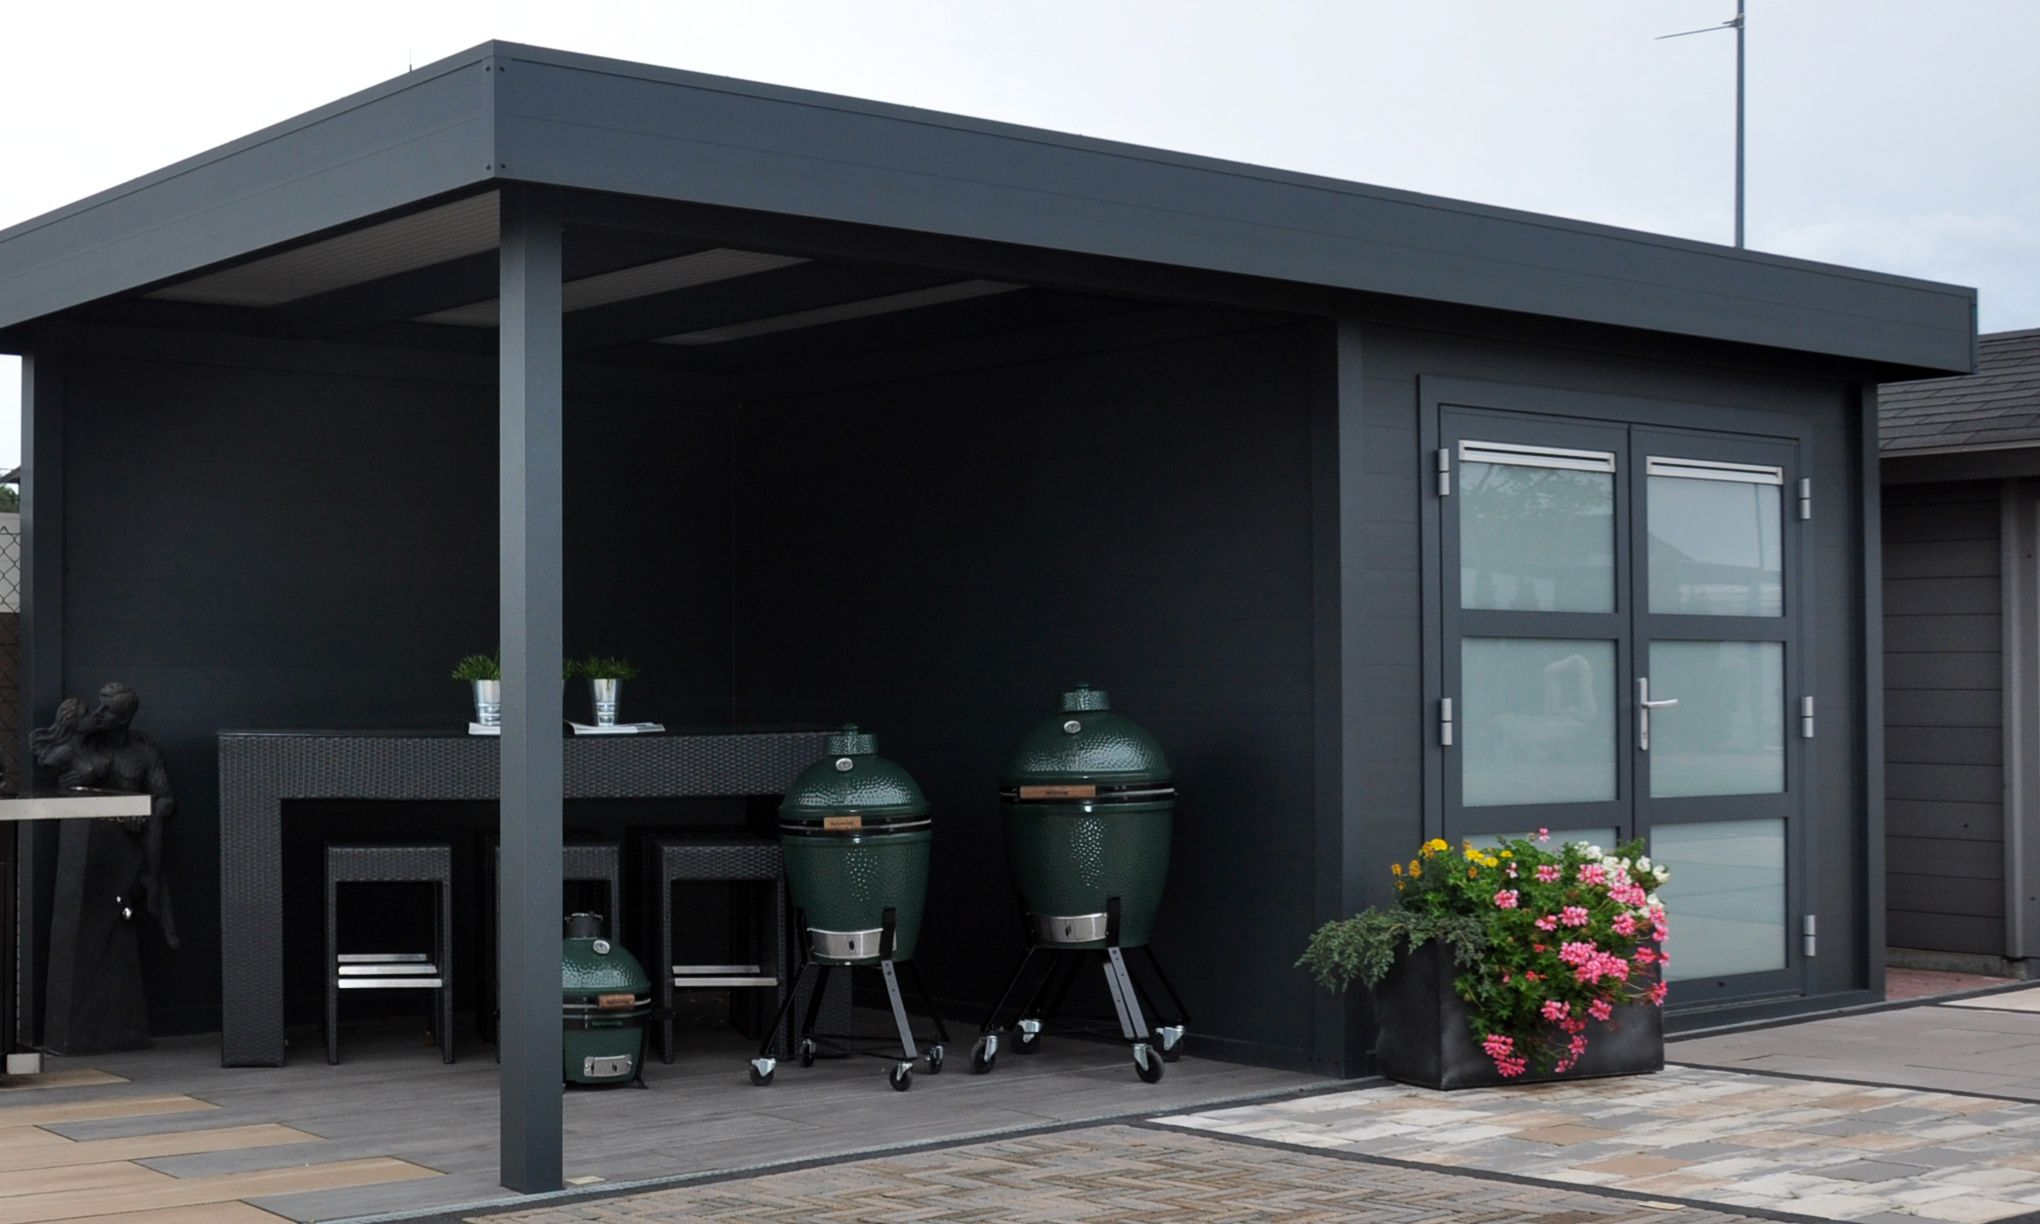 modernes flachdach gartenhaus aus aluminium mit berdachter terrasse q s gartendeco. Black Bedroom Furniture Sets. Home Design Ideas